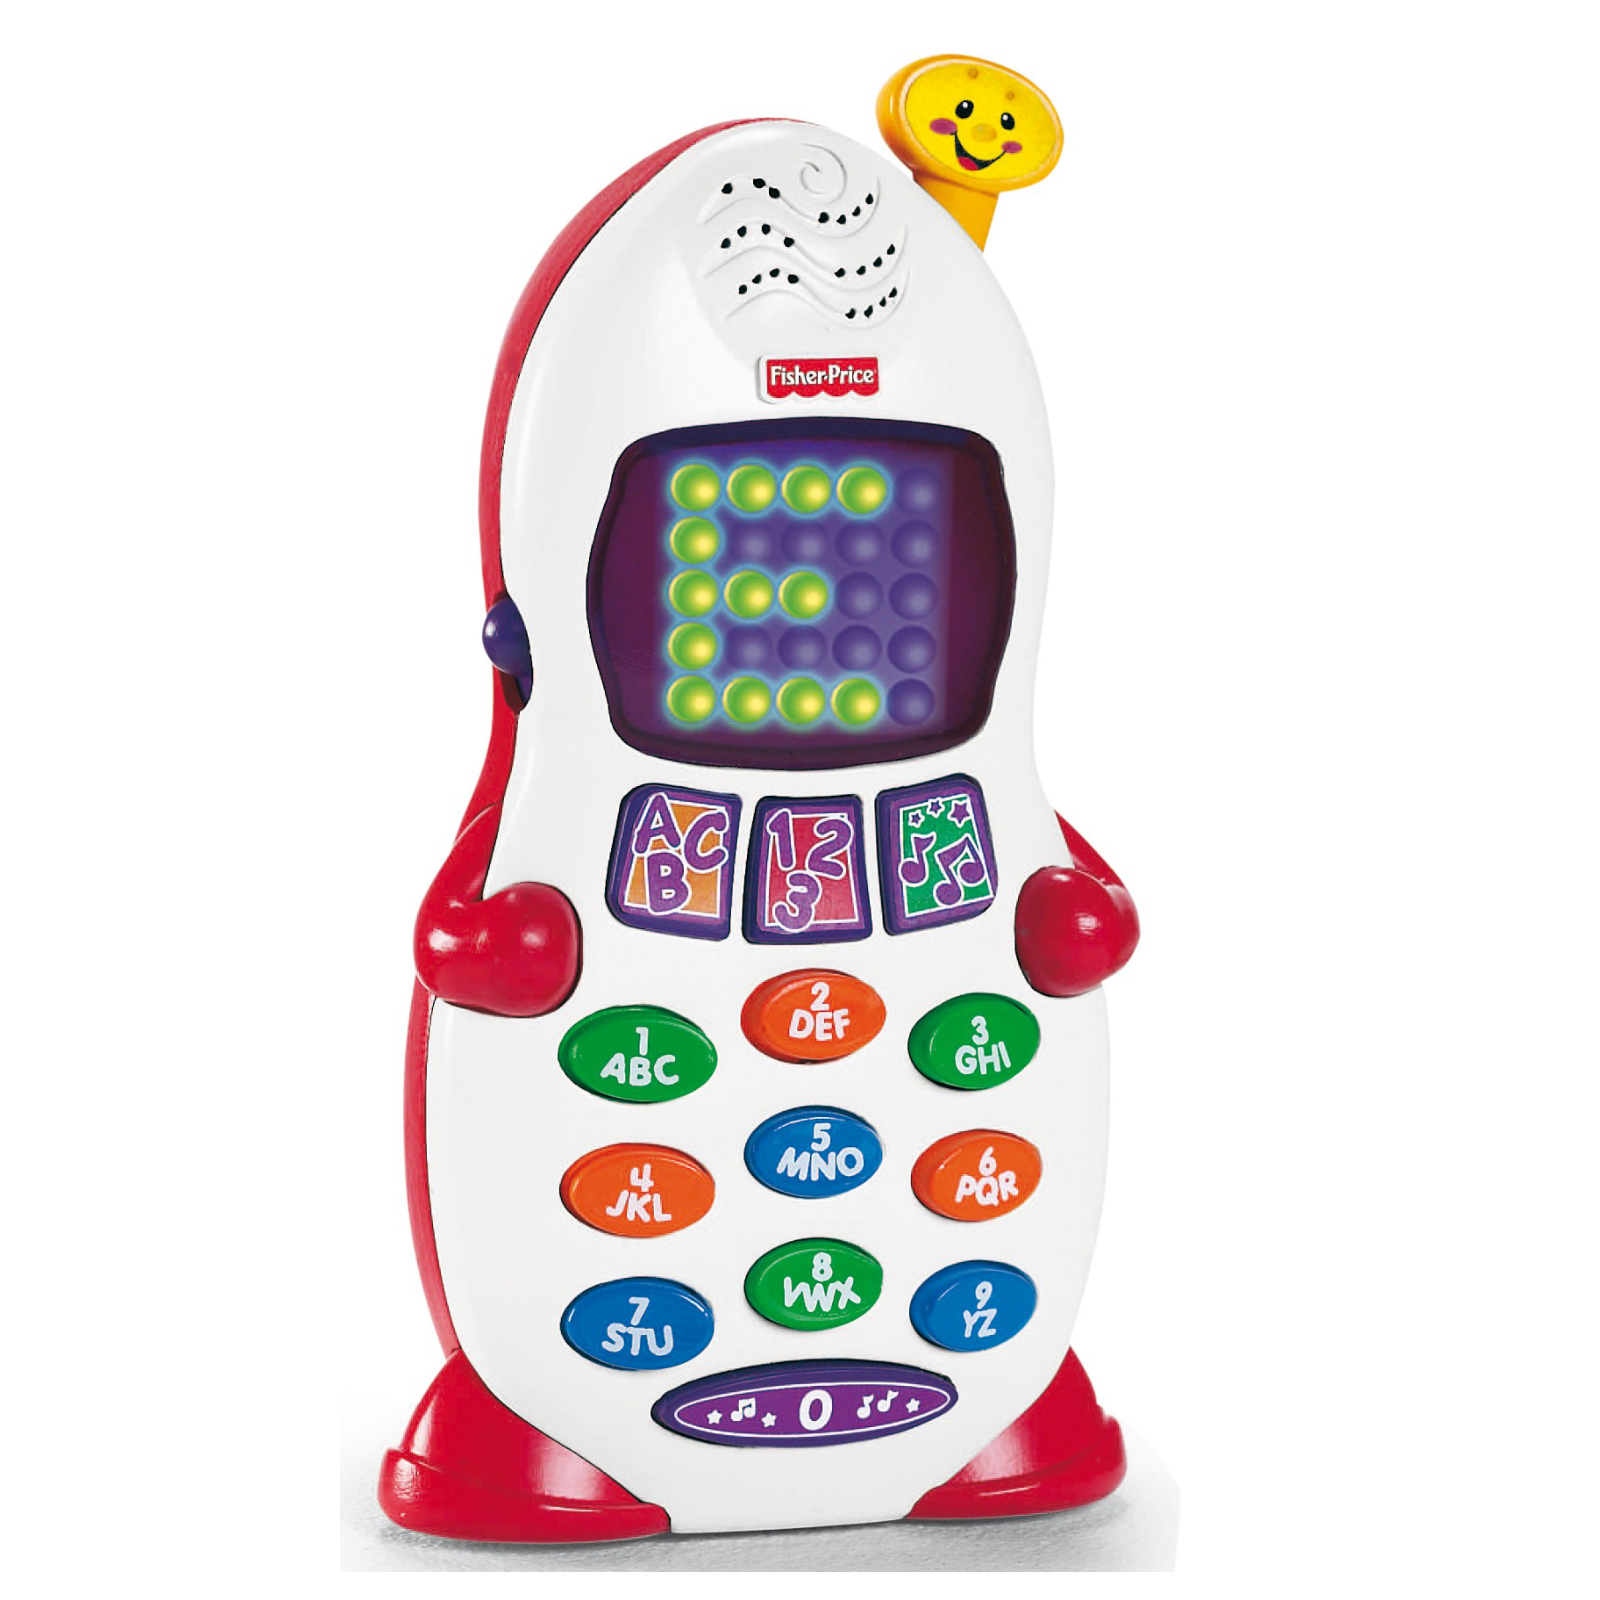 ����������� ������� Fisher Price ������ � ����� ��������� ������� � 6 ���